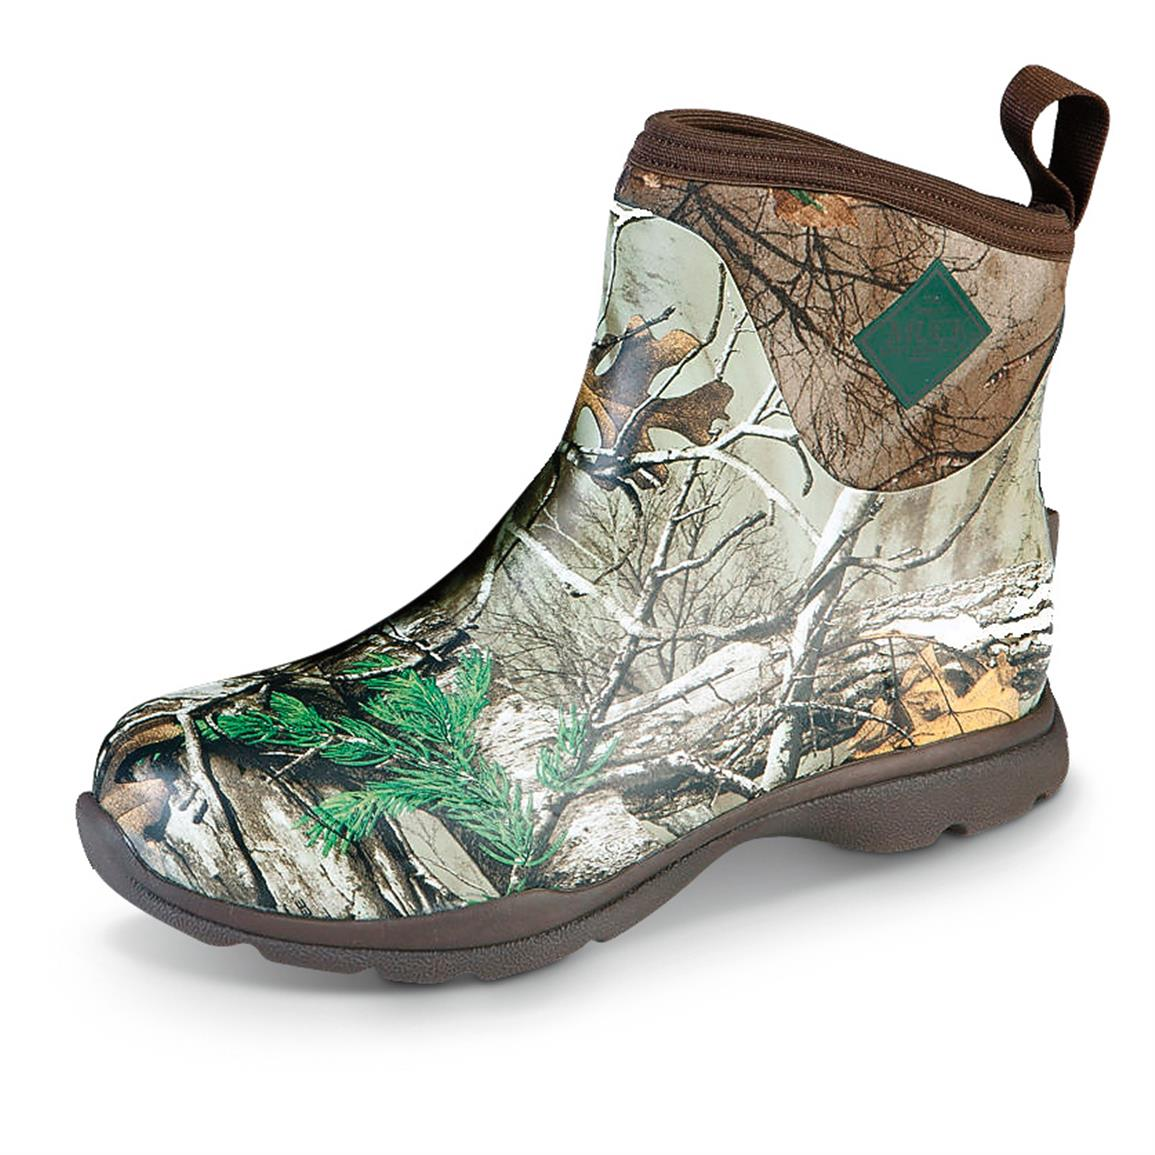 Muck Men's Arctic Excursion Insulated Waterproof Rubber Ankle Boots, Realtree Xtra